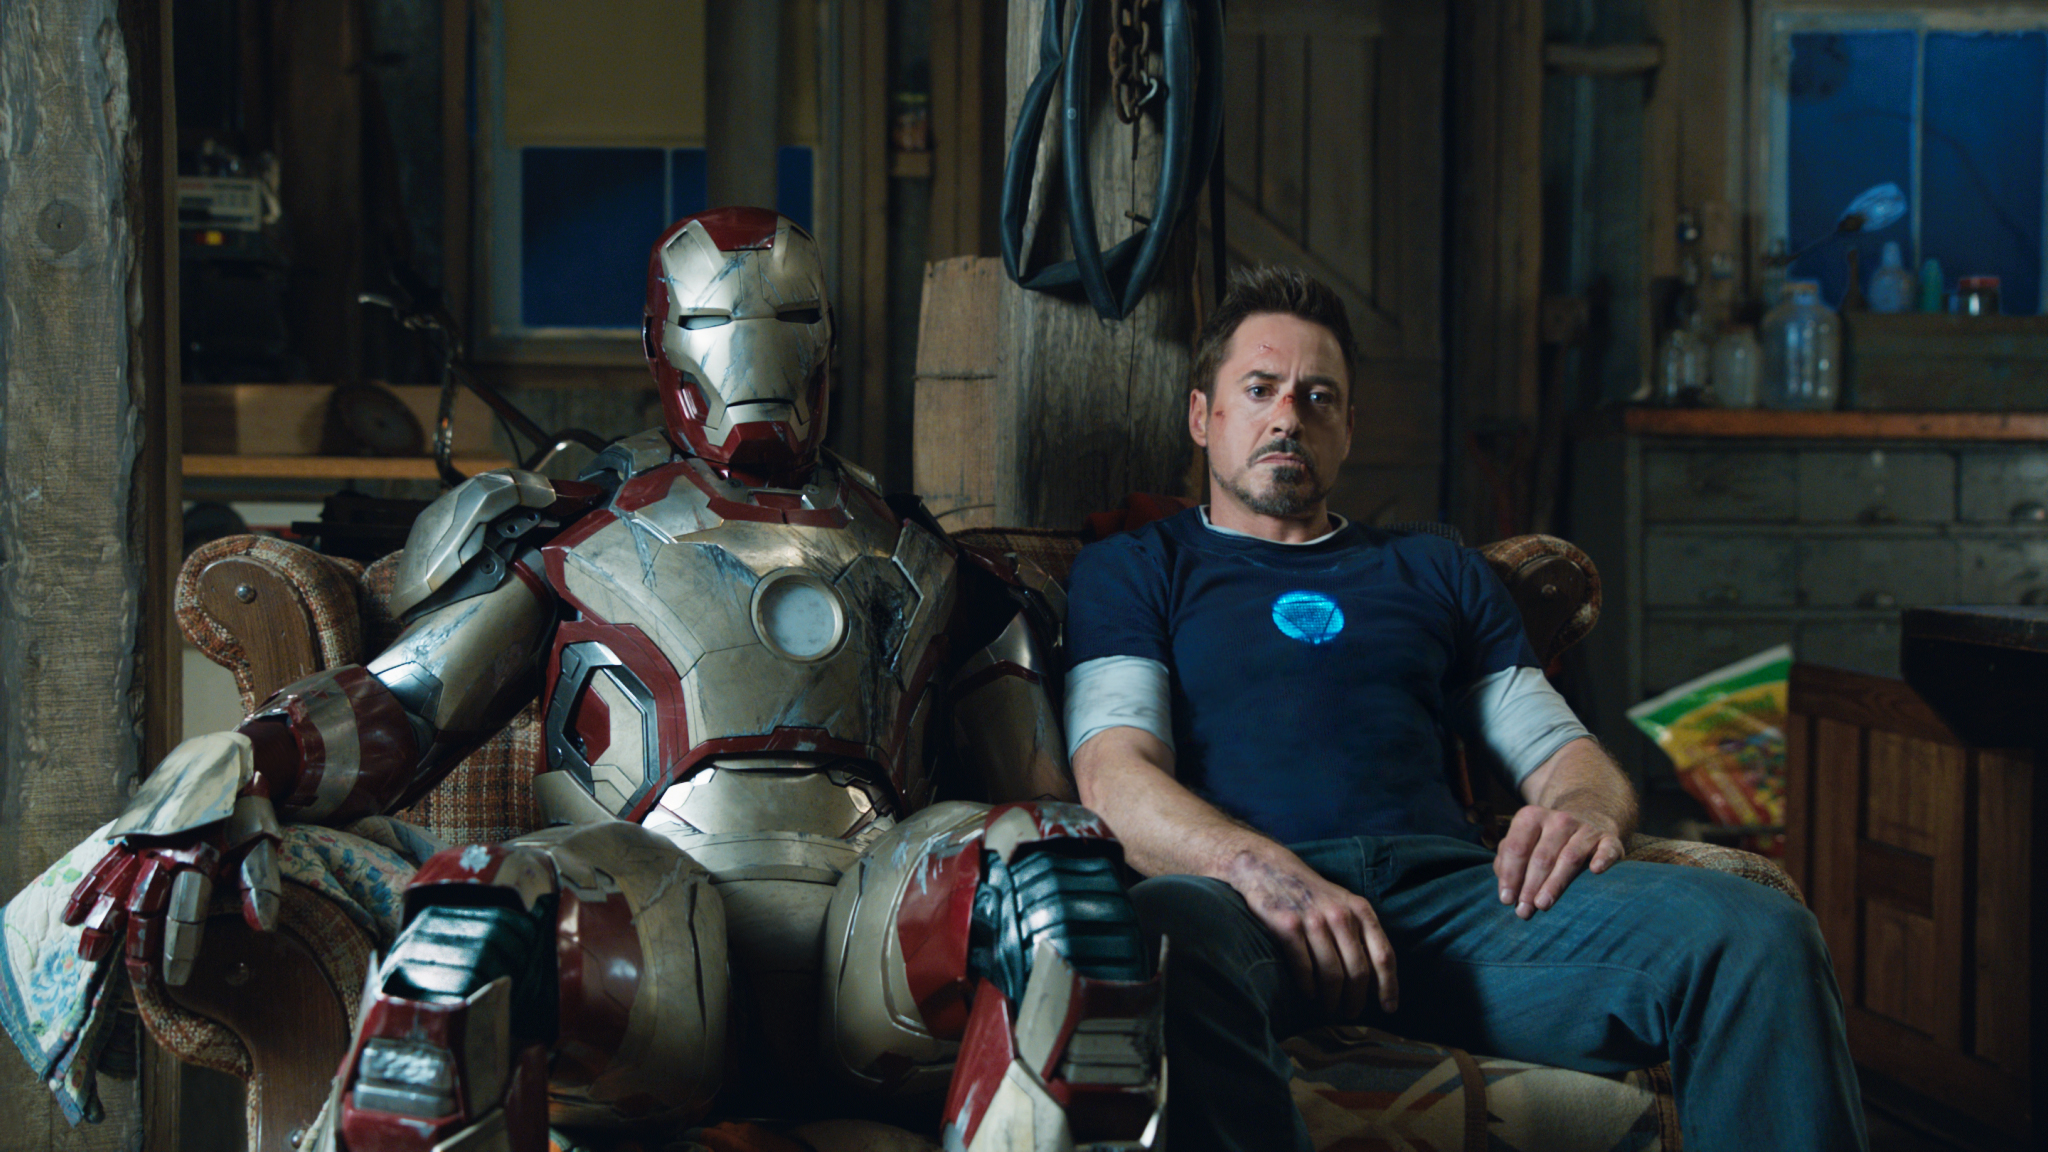 Still of Robert Downey Jr. as Tony Stark in Iron Man 3